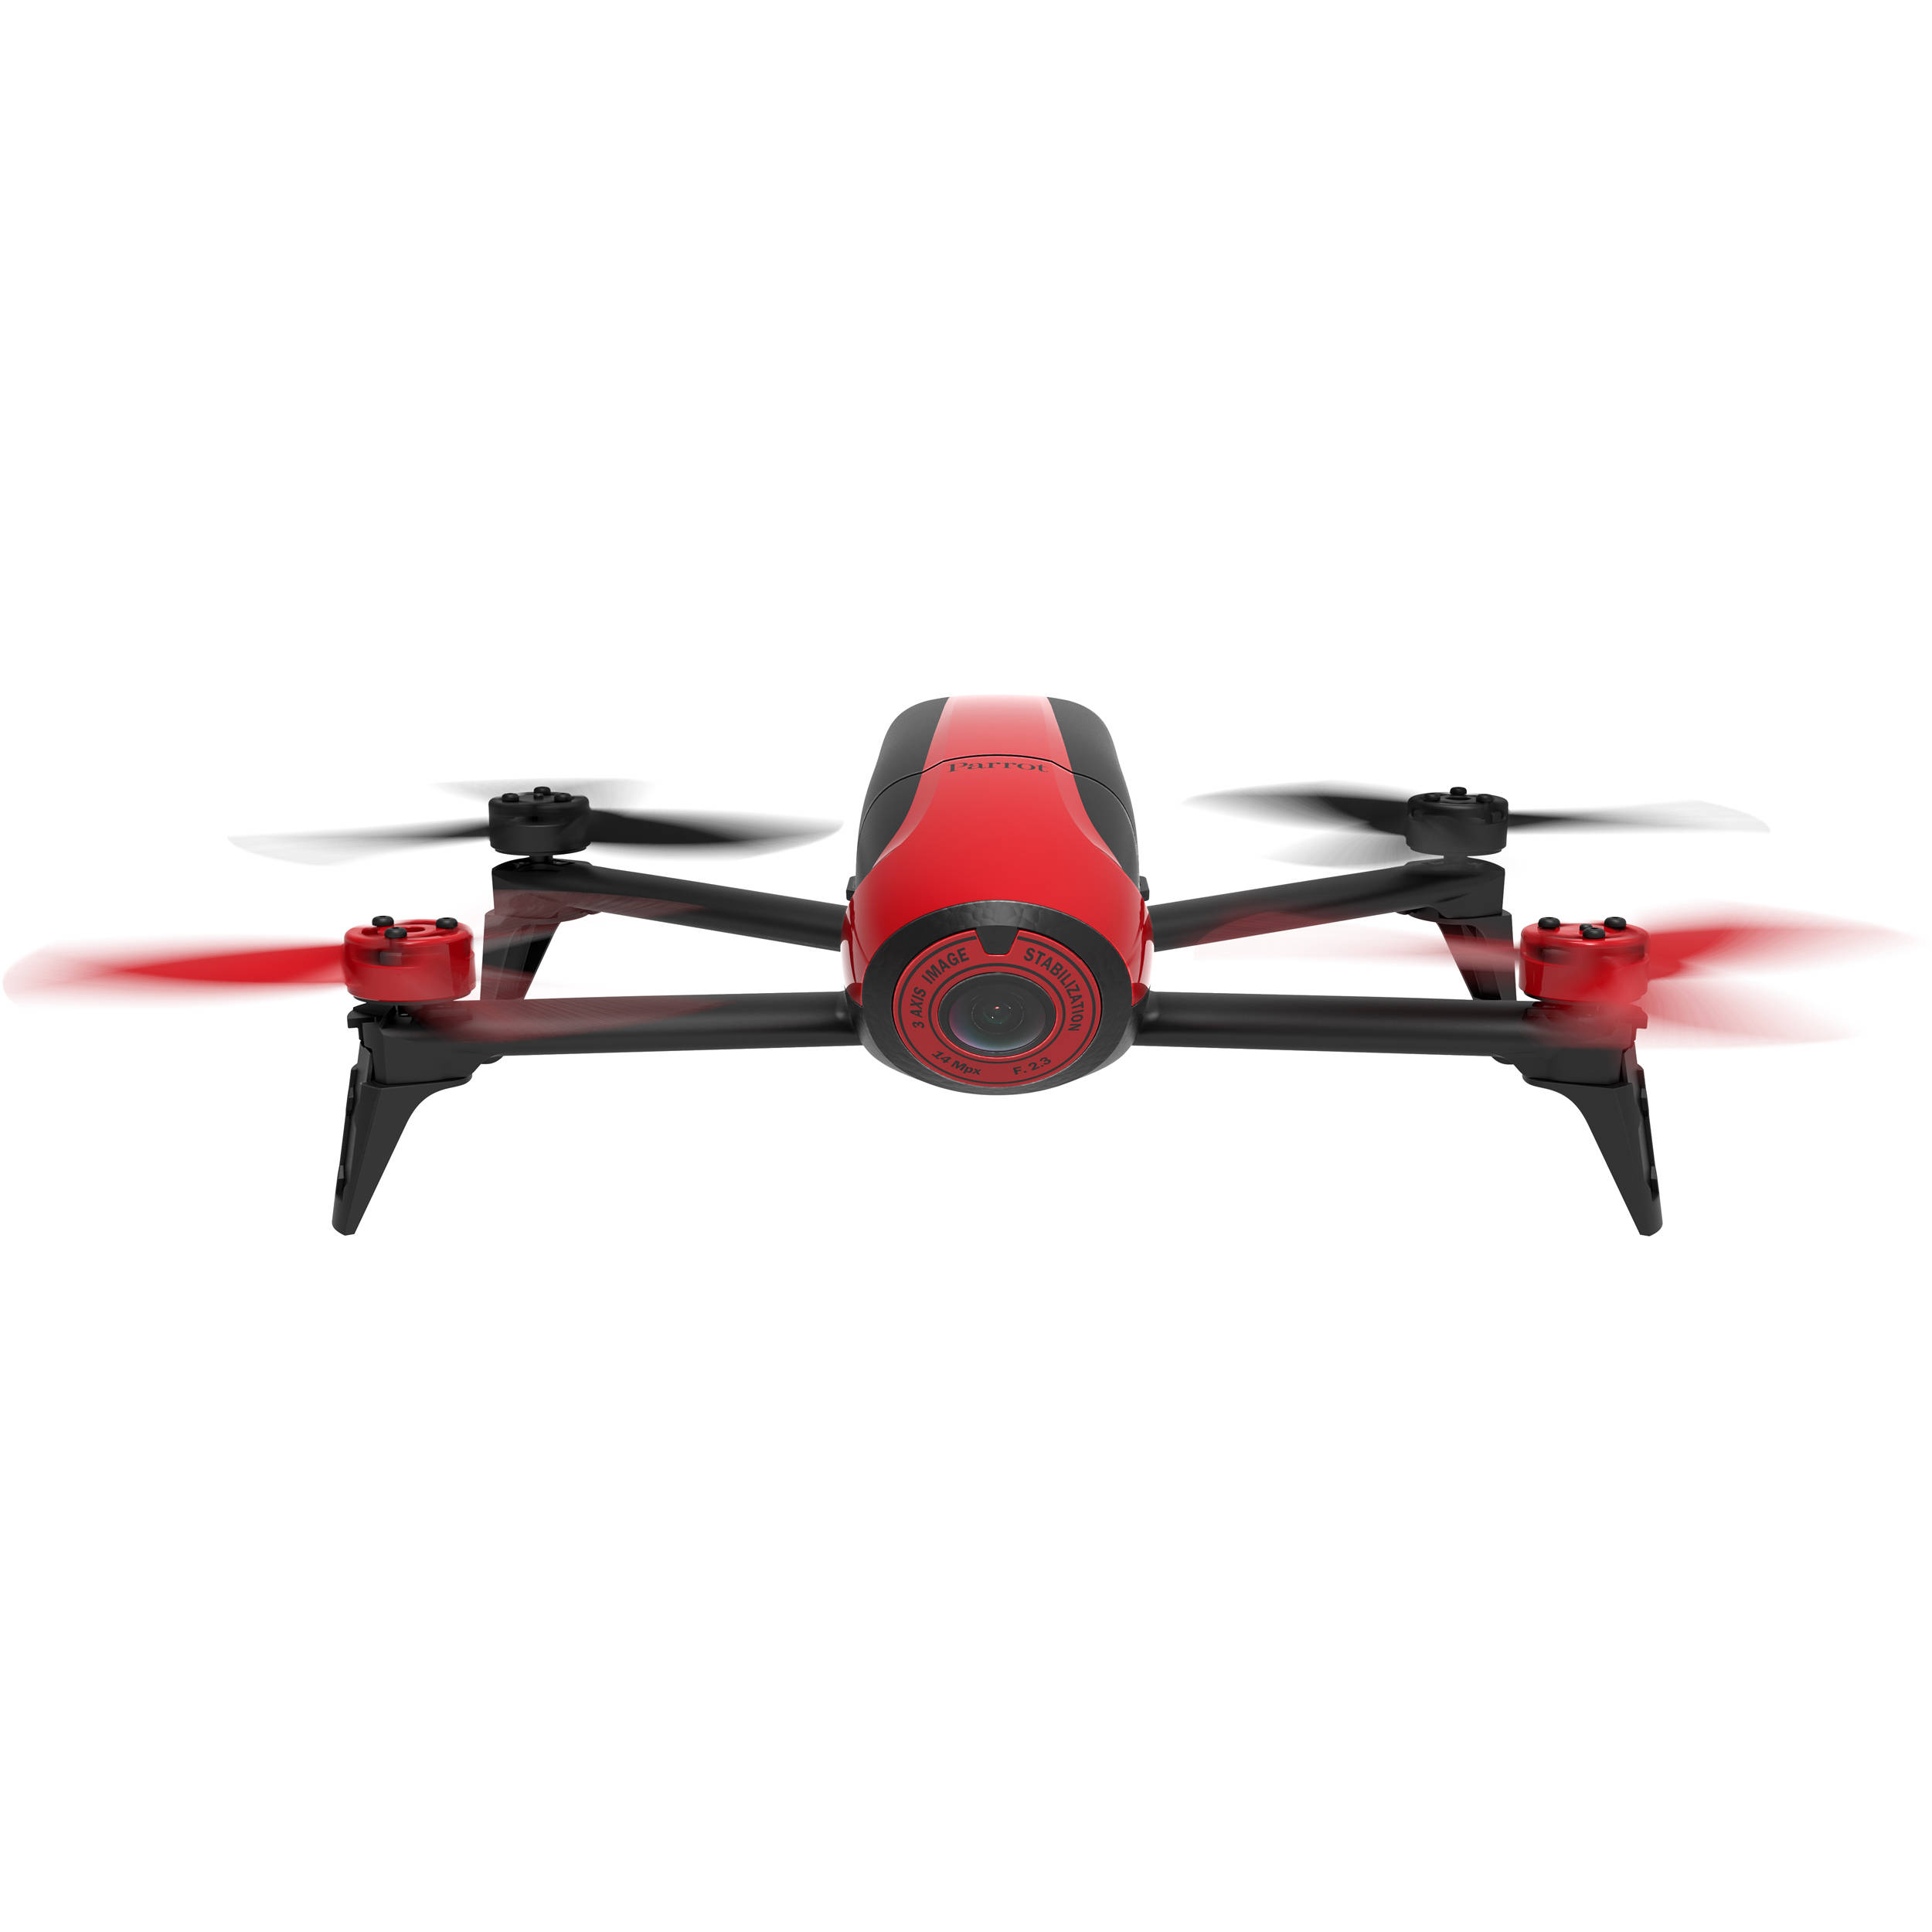 home drones with Parrot Pf726000 Bebop Drone 2 With on Dell Xps 13 2018 Review moreover Samsung Galaxy Note8 64 Gb Gold 10168902 Pdt besides RqYRQWbzcnF as well Calendario Zodiaco Maya furthermore Rolls Royce Exterion Concept Can Plow Snow In Reverse.